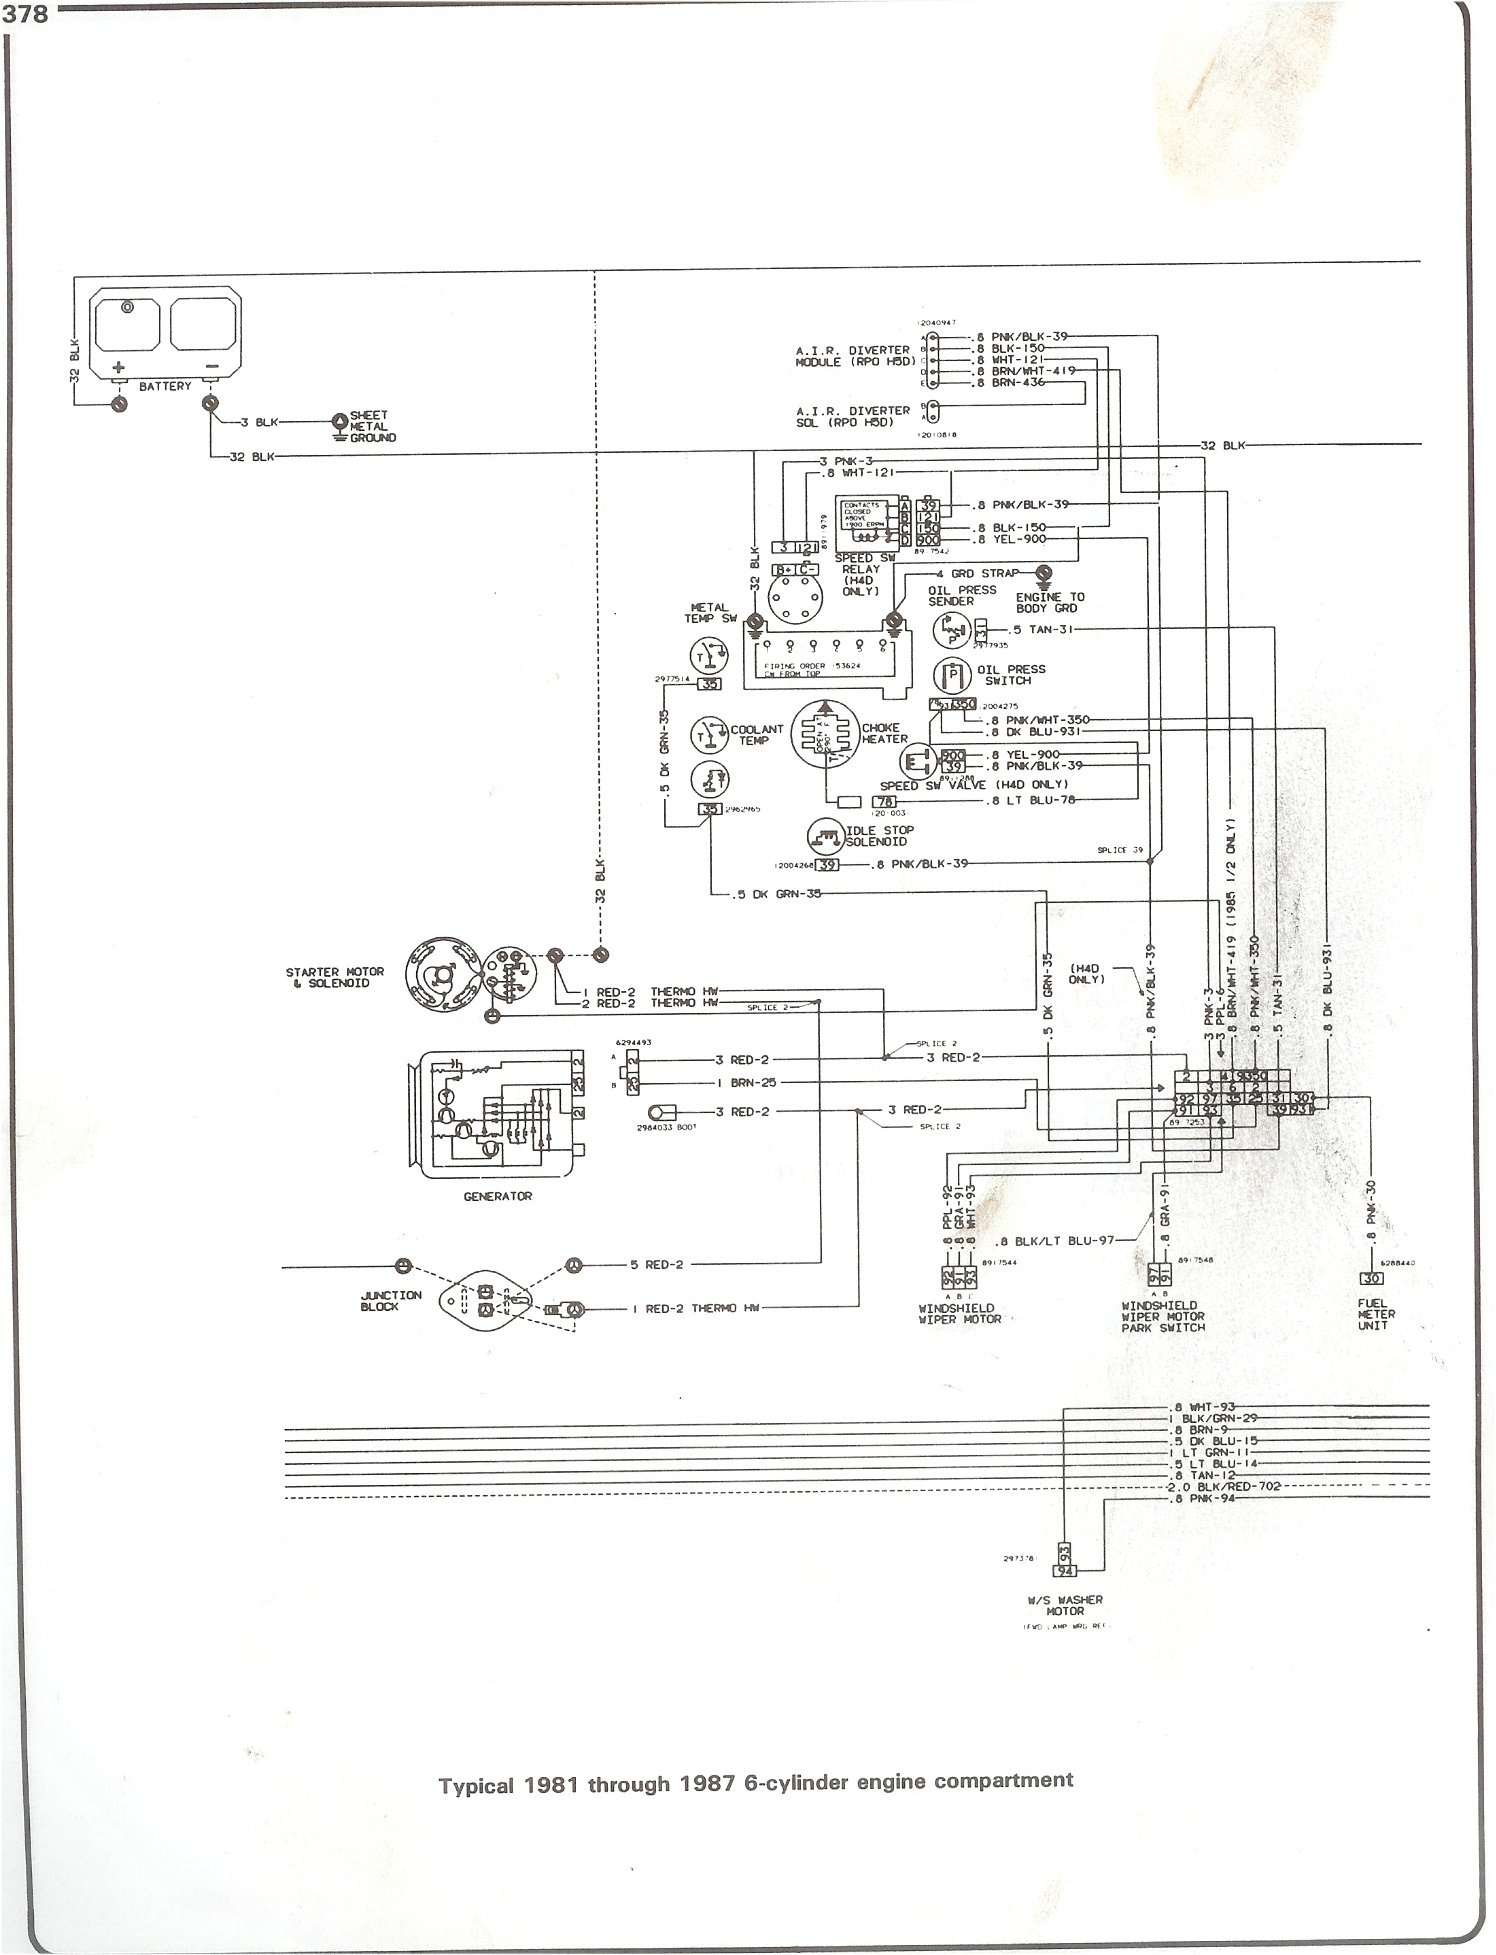 1984 Gmc K3500 Wiring Diagram Wire Center 1982 Chevy Truck Courtesy Light Complete 73 87 Diagrams Rh Forum 87chevytrucks Com